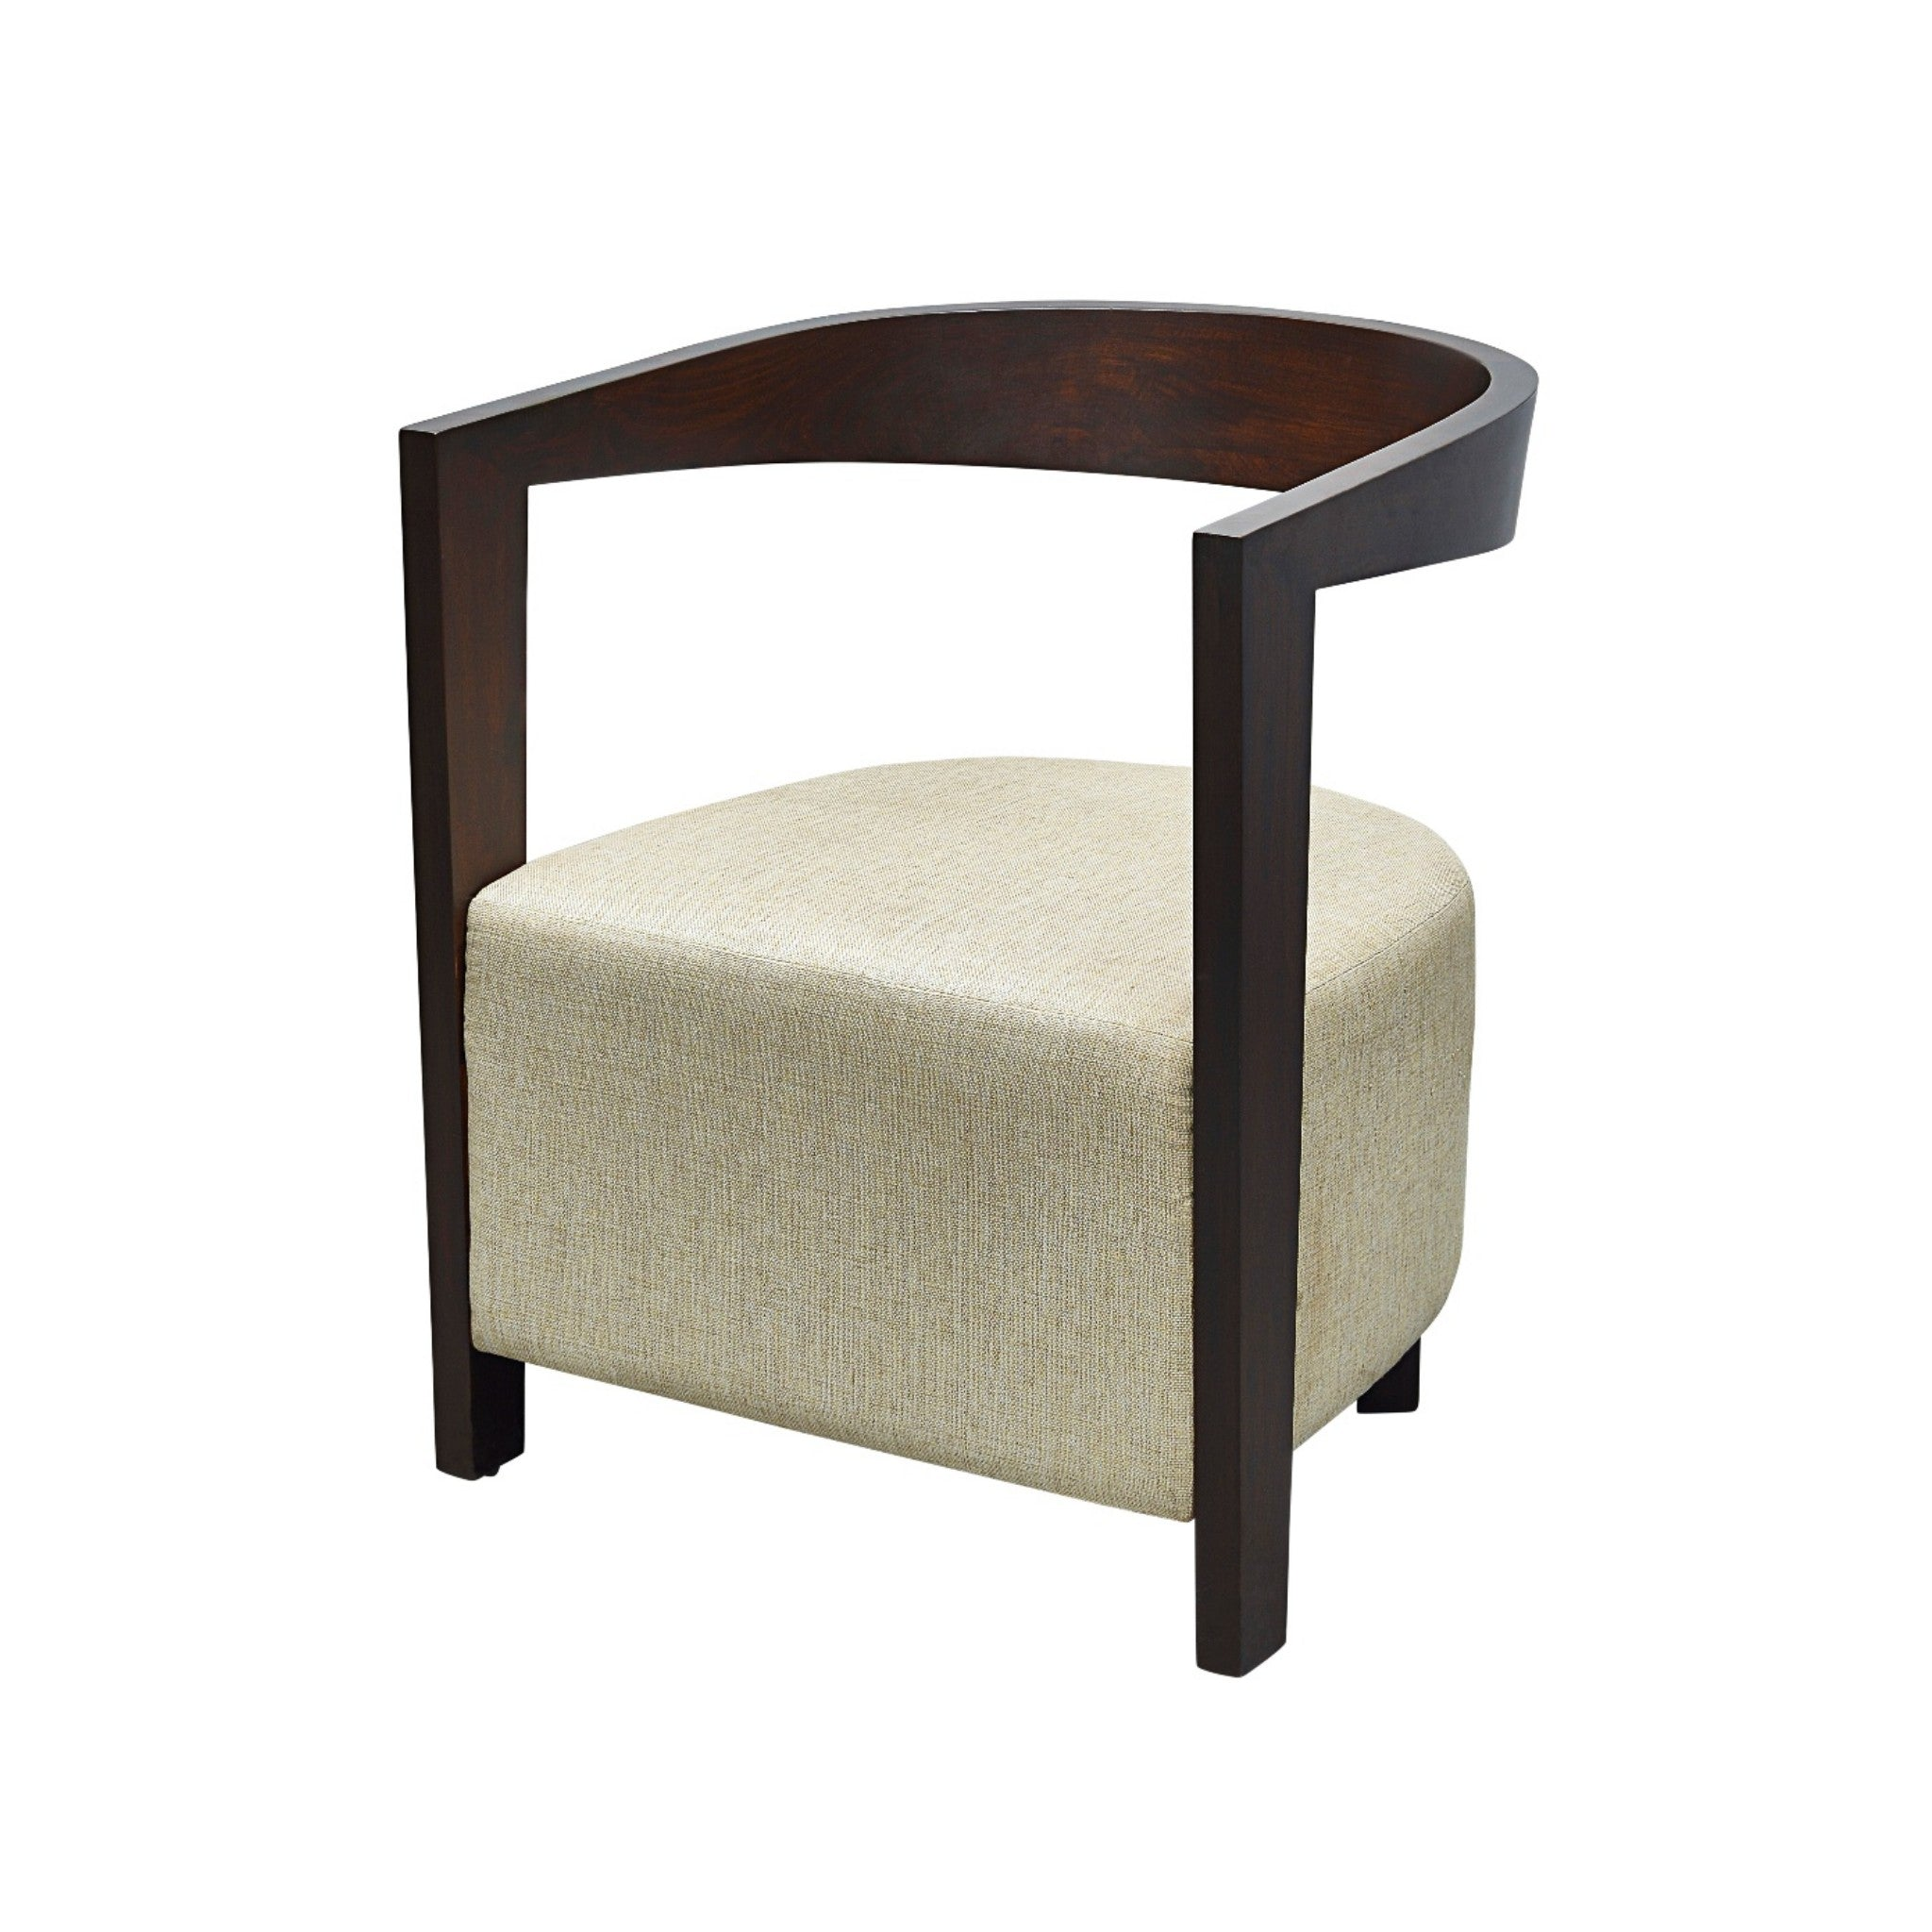 Box Cushion Arm Chair - Suspended Curved Back Chair - Teak Chair